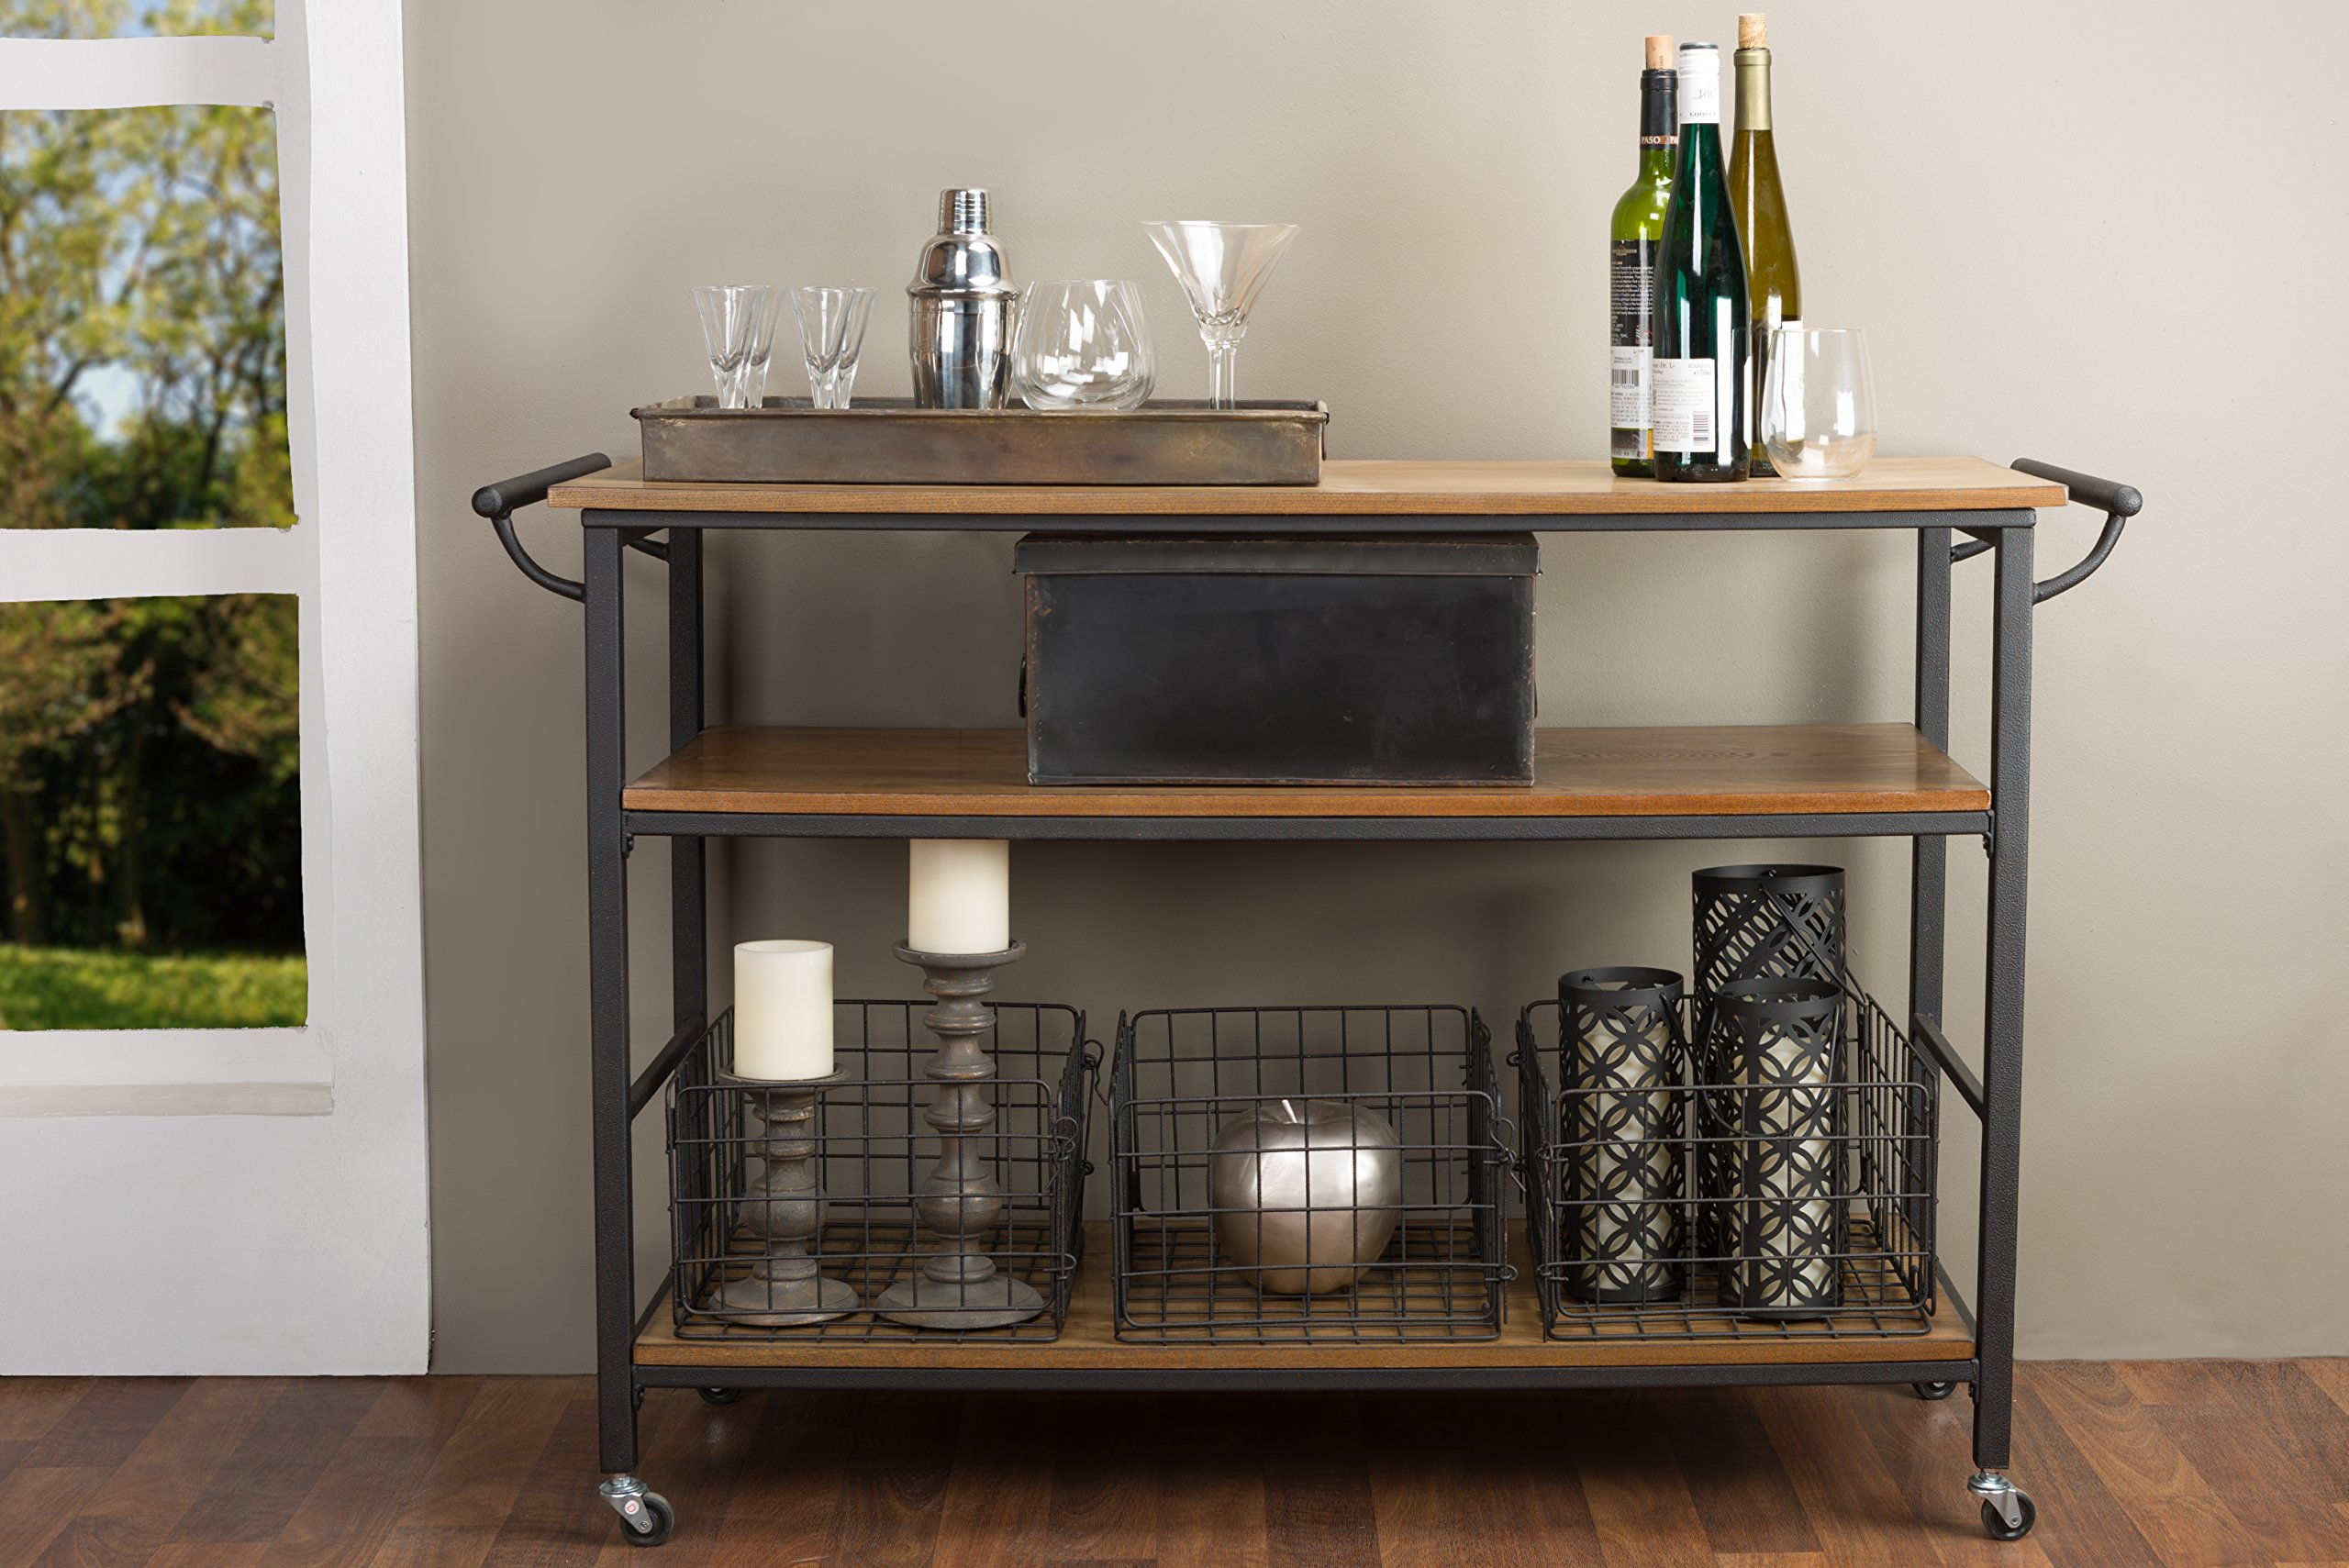 Baxton Studio Lancashire Wood and Metal Kitchen Cart, Brown by Baxton Studio